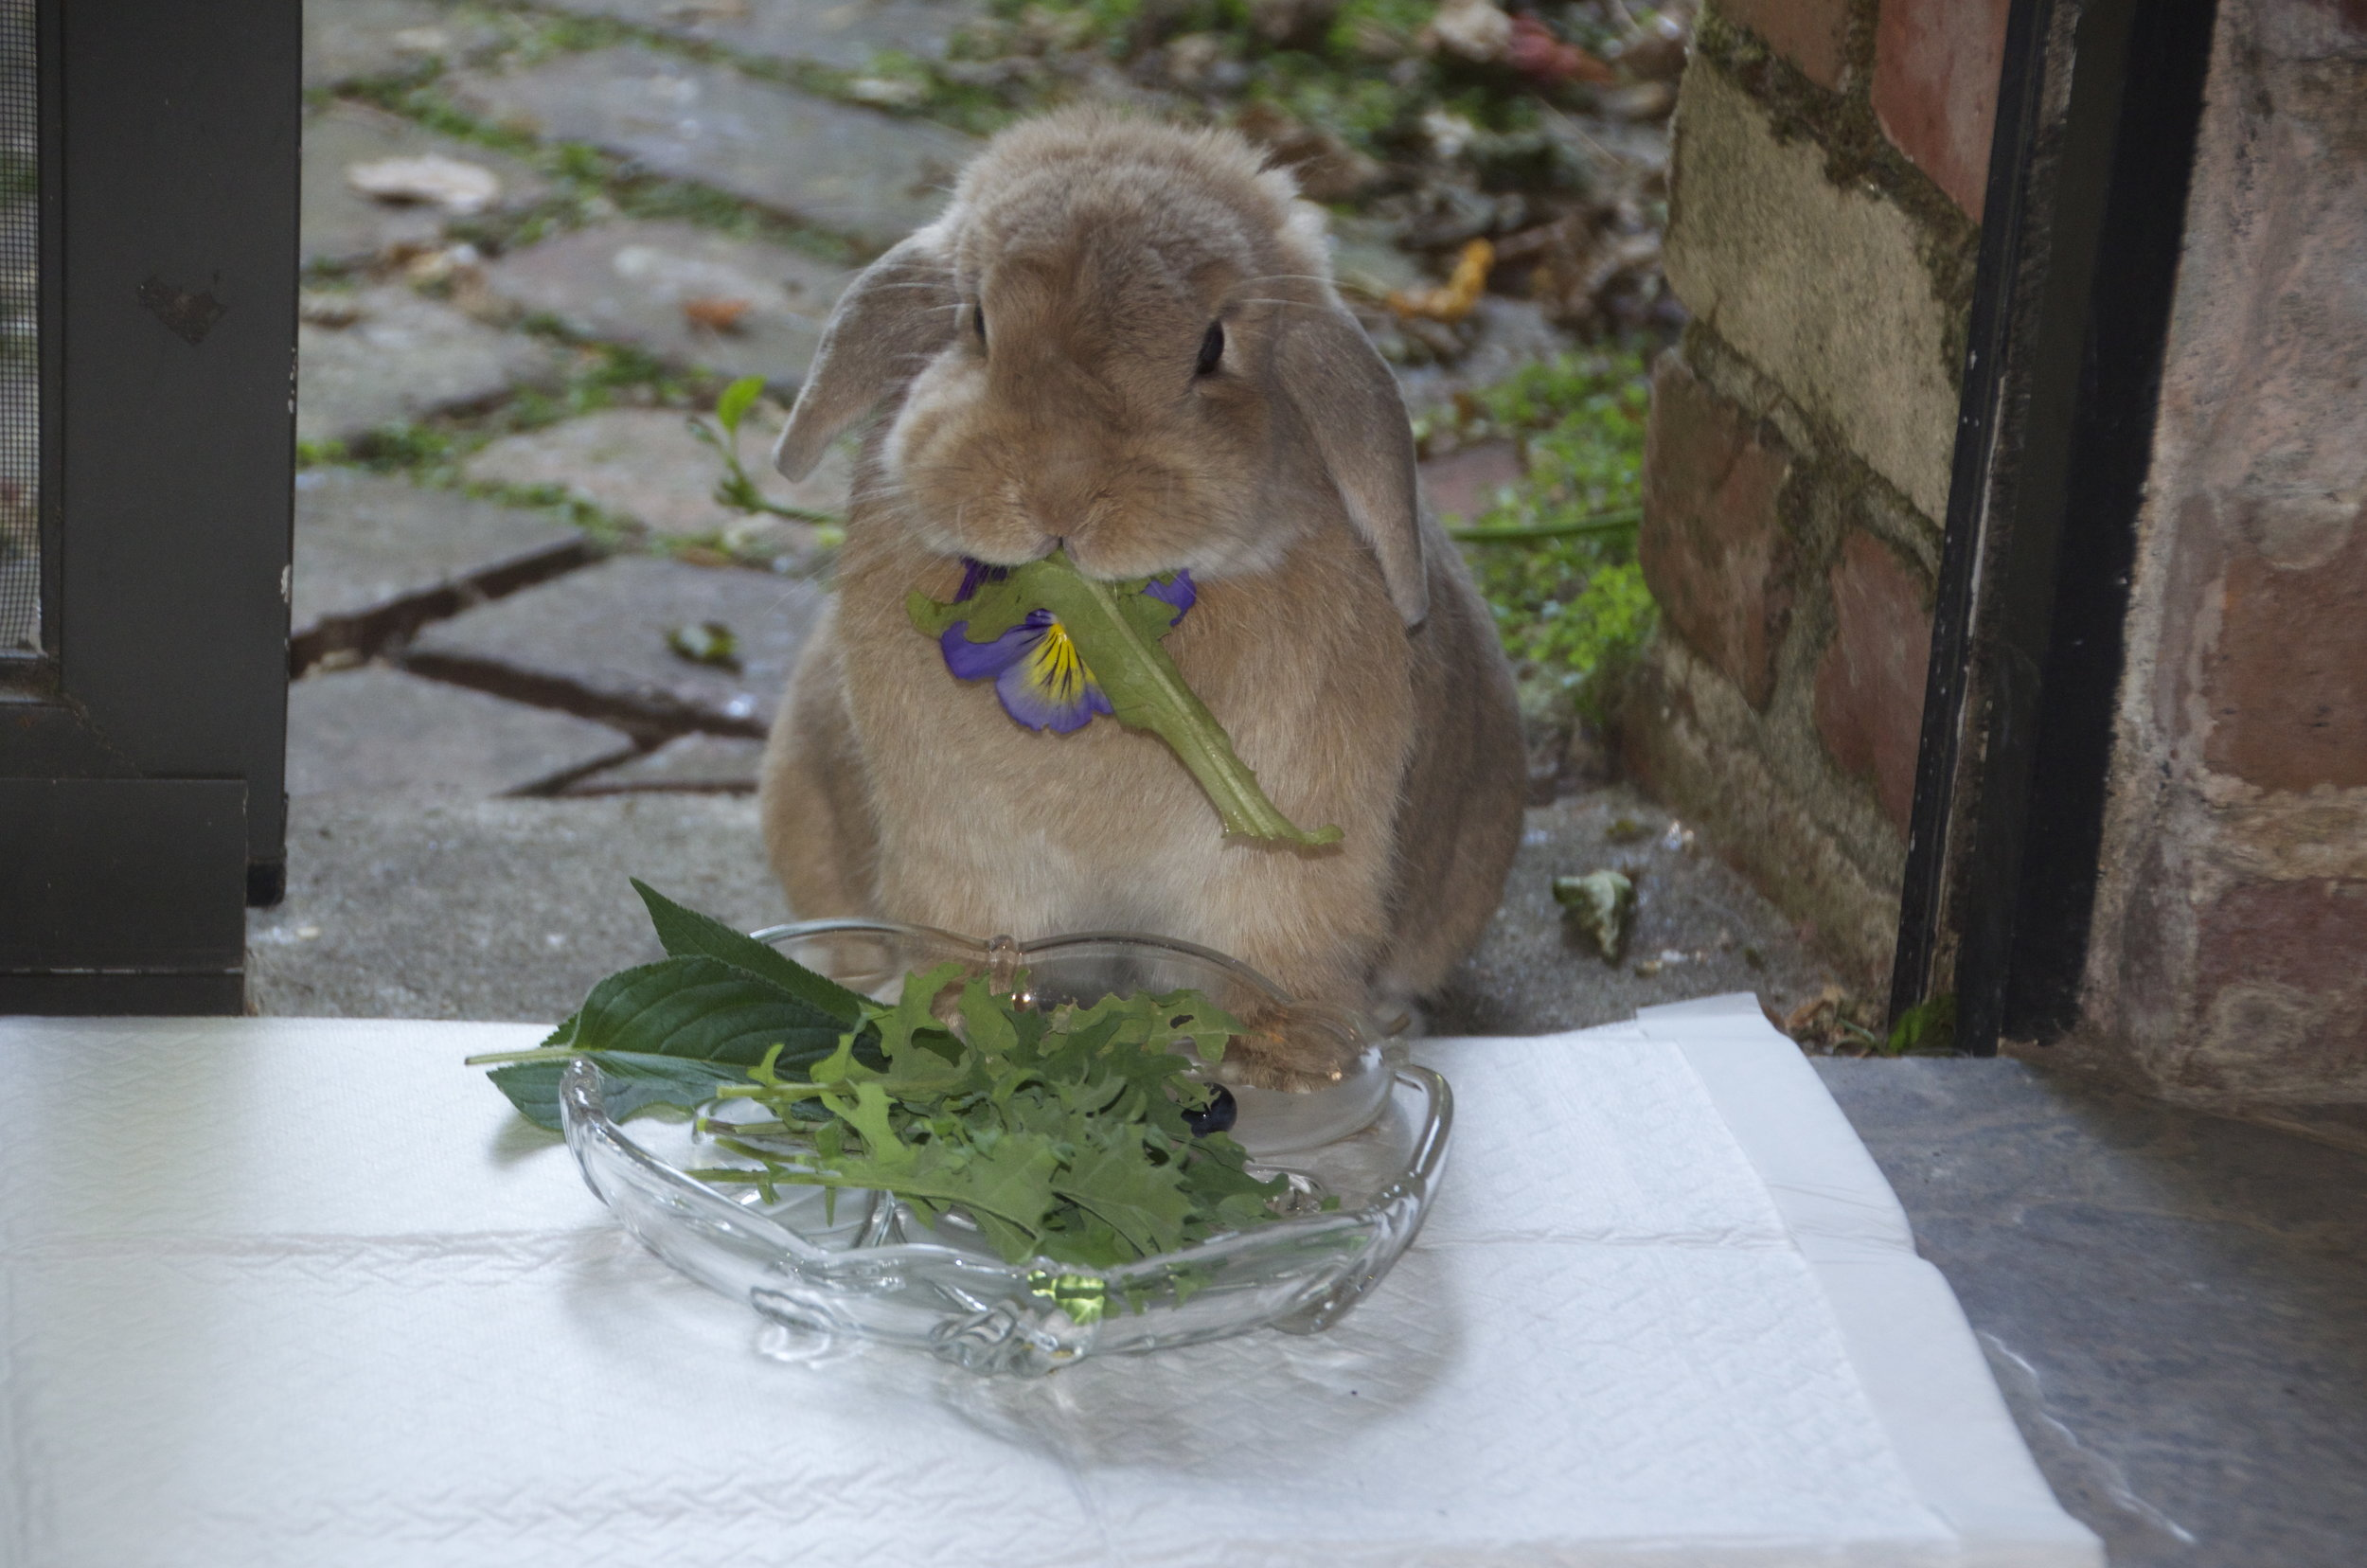 Bunny Enjoys a Nice Salad Al Fresco